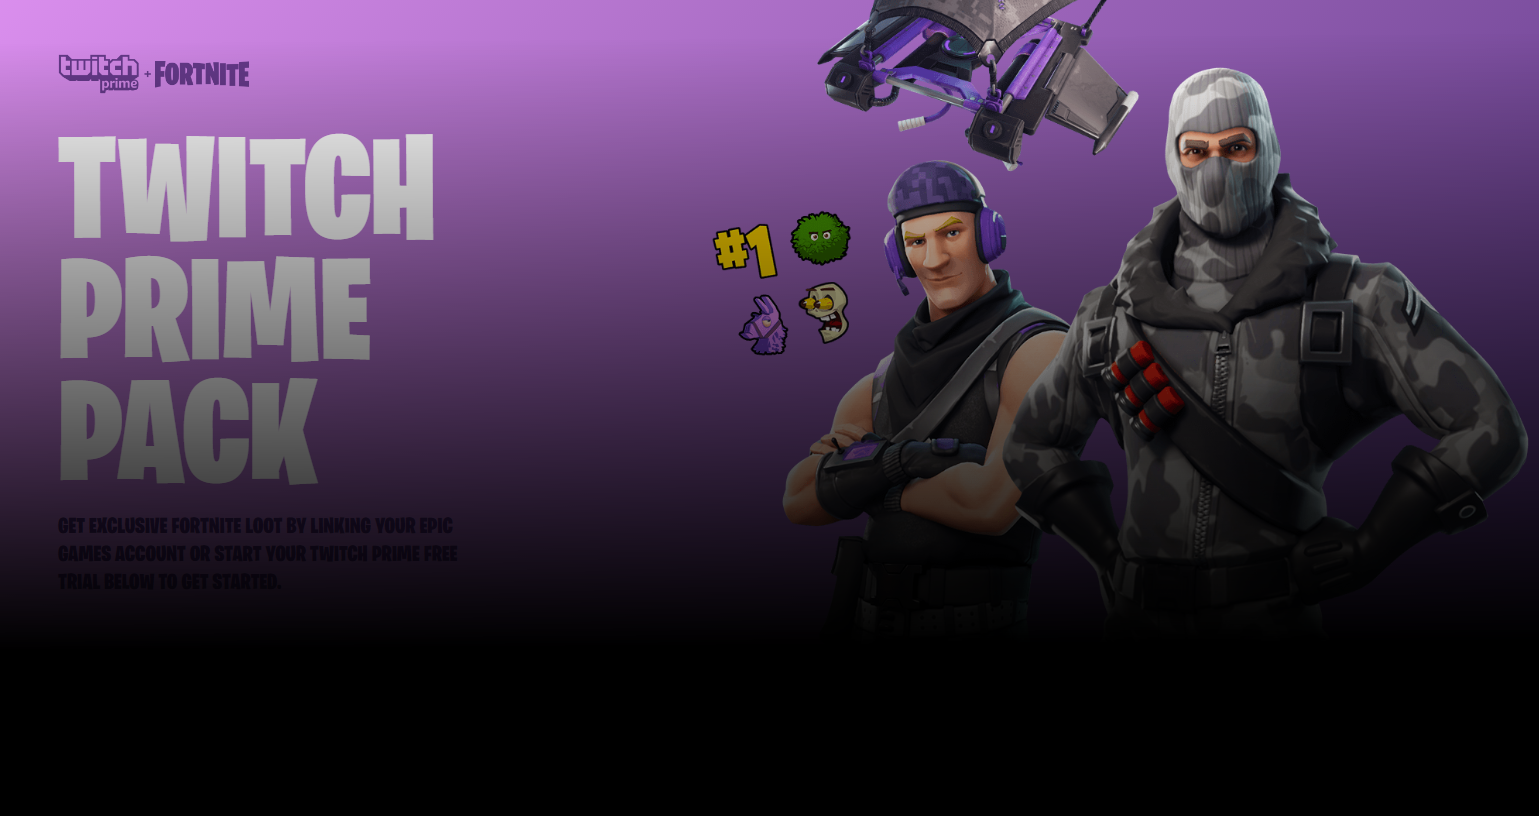 Fortnite Adds Twitch Prime Pack and Hunting Rifle   Gaming ...